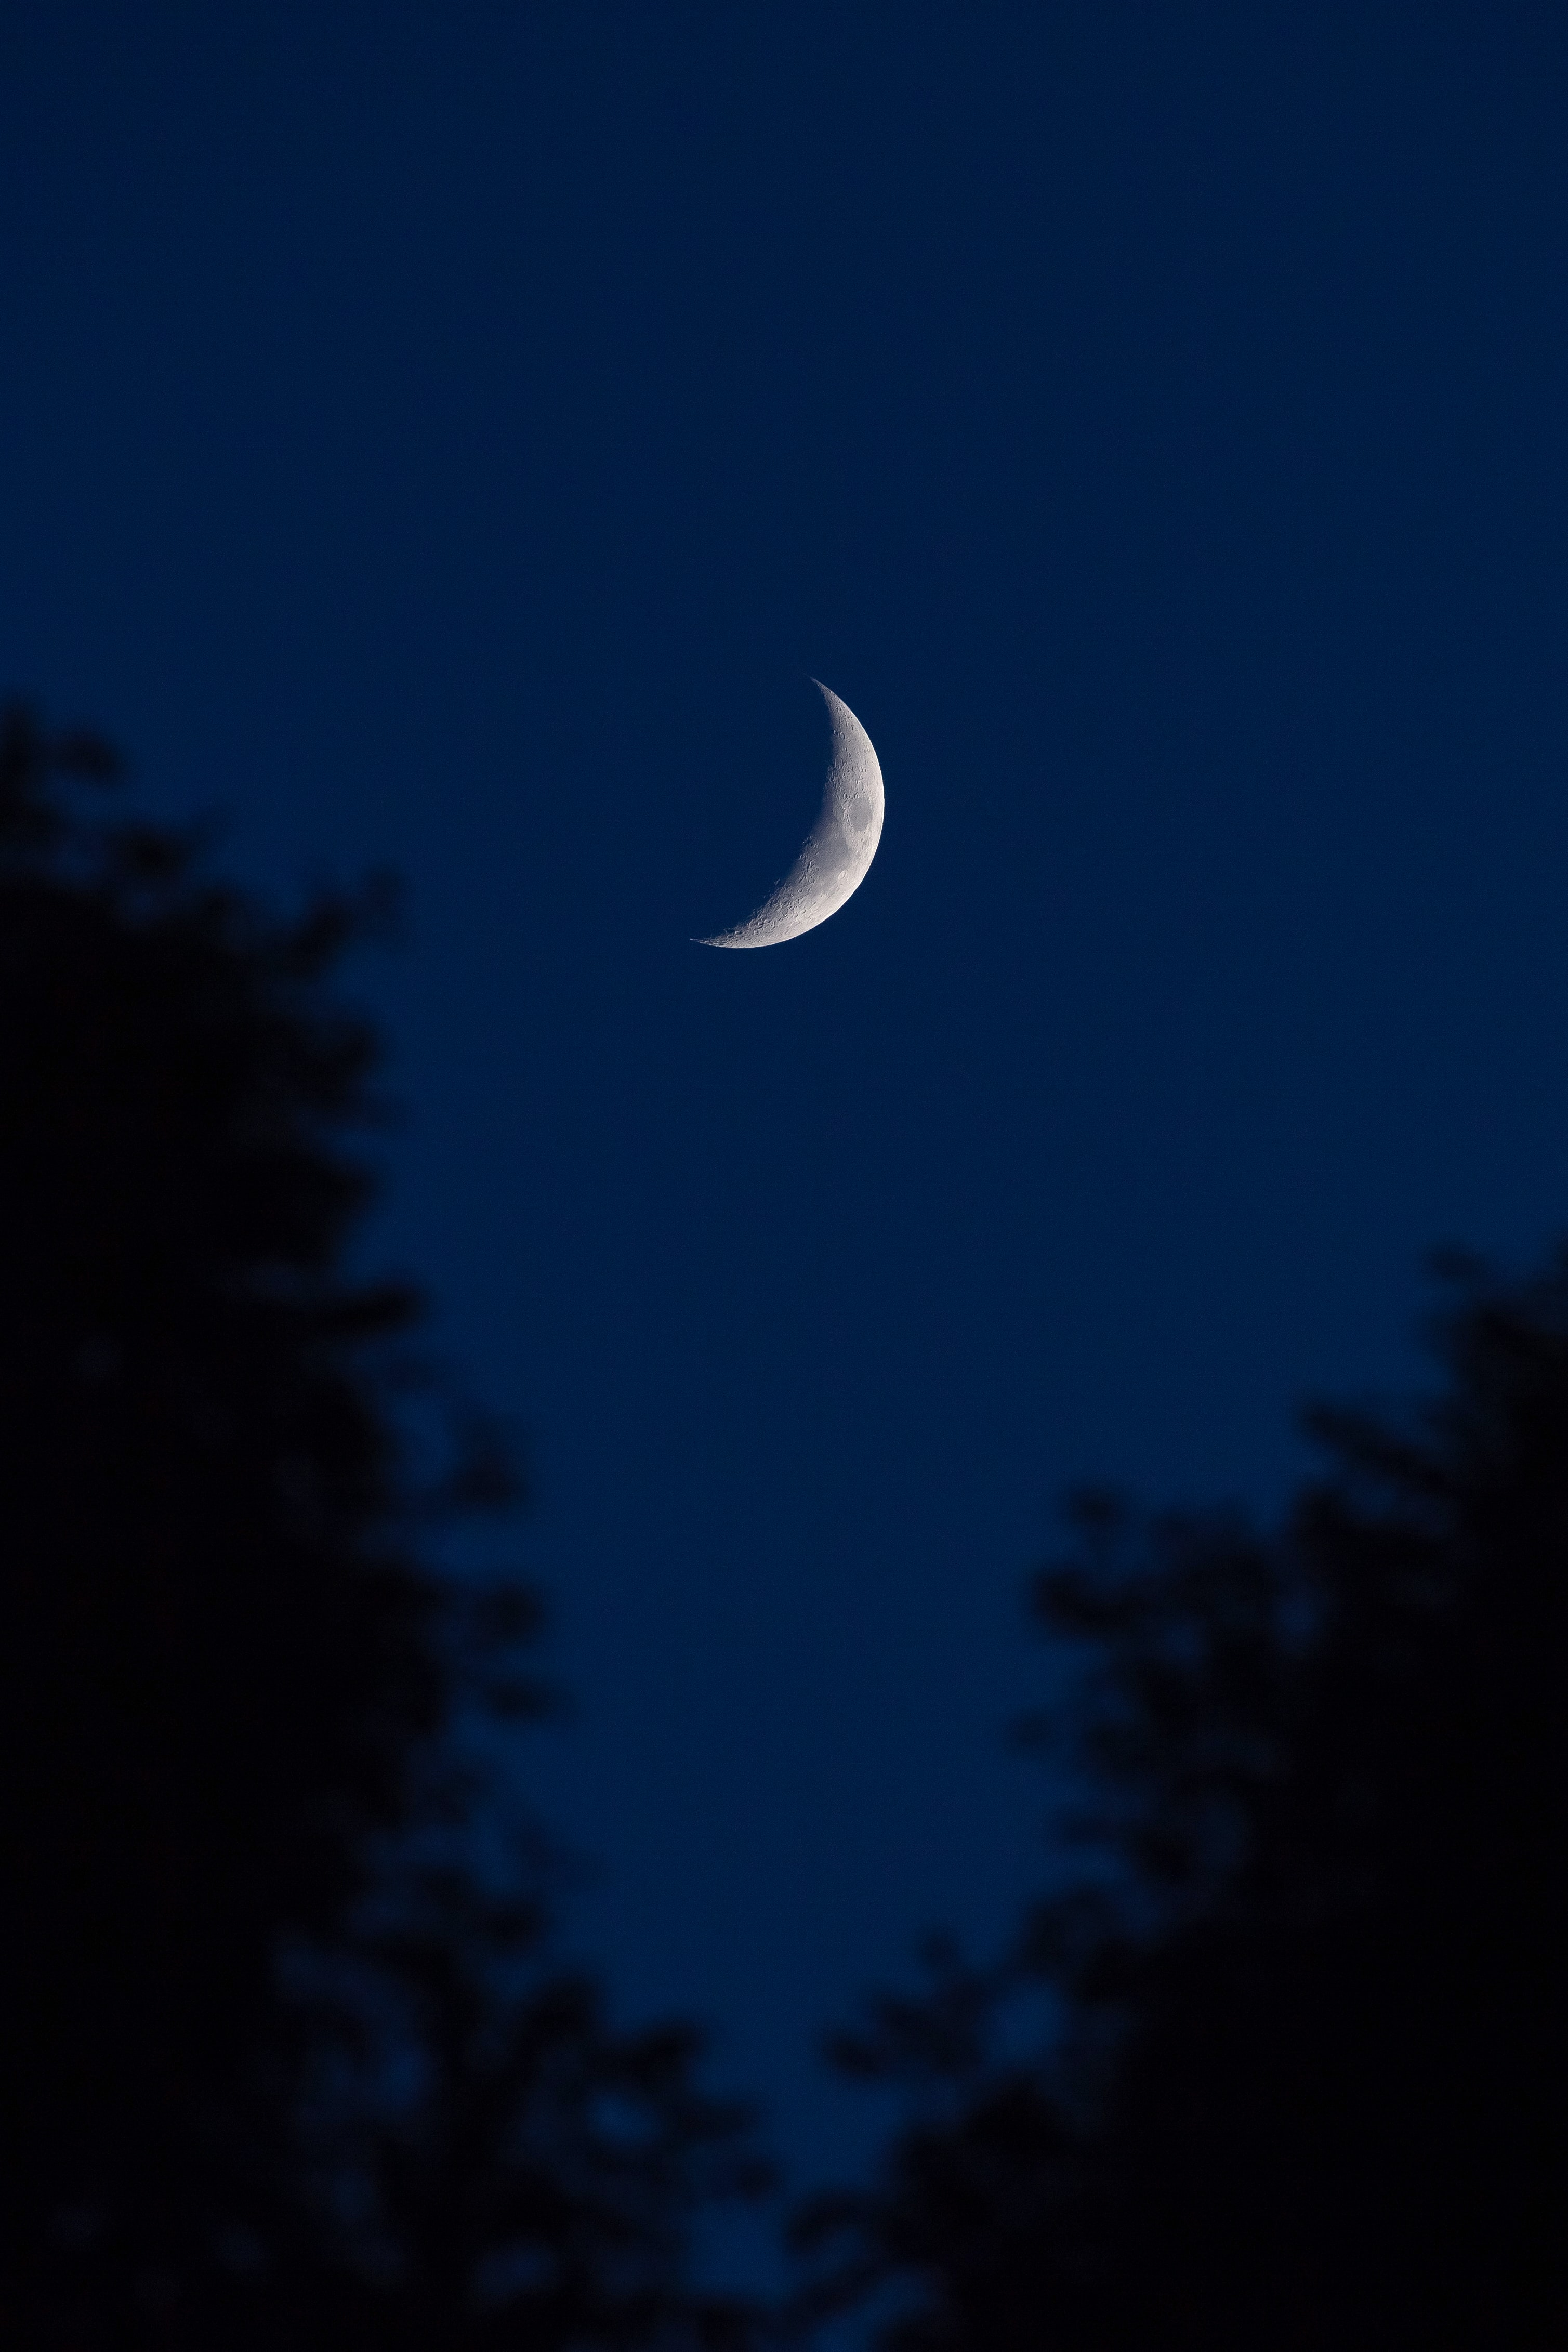 photo of crescent moon during nighttime